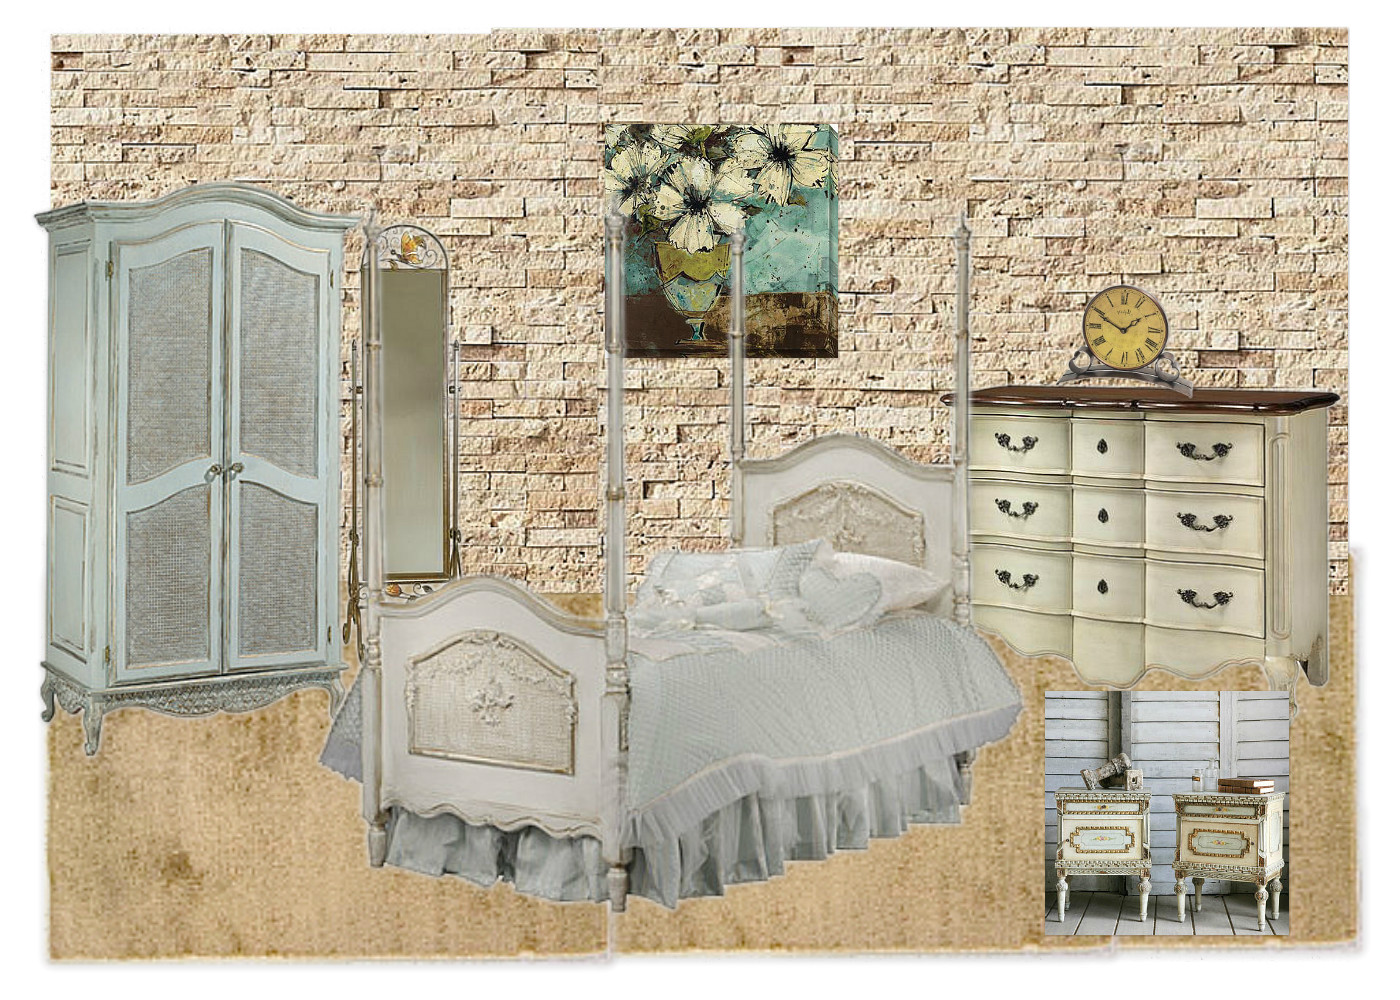 Moodboards Monday - Shabby Chic Bedroom - Finishing Touch Interiors